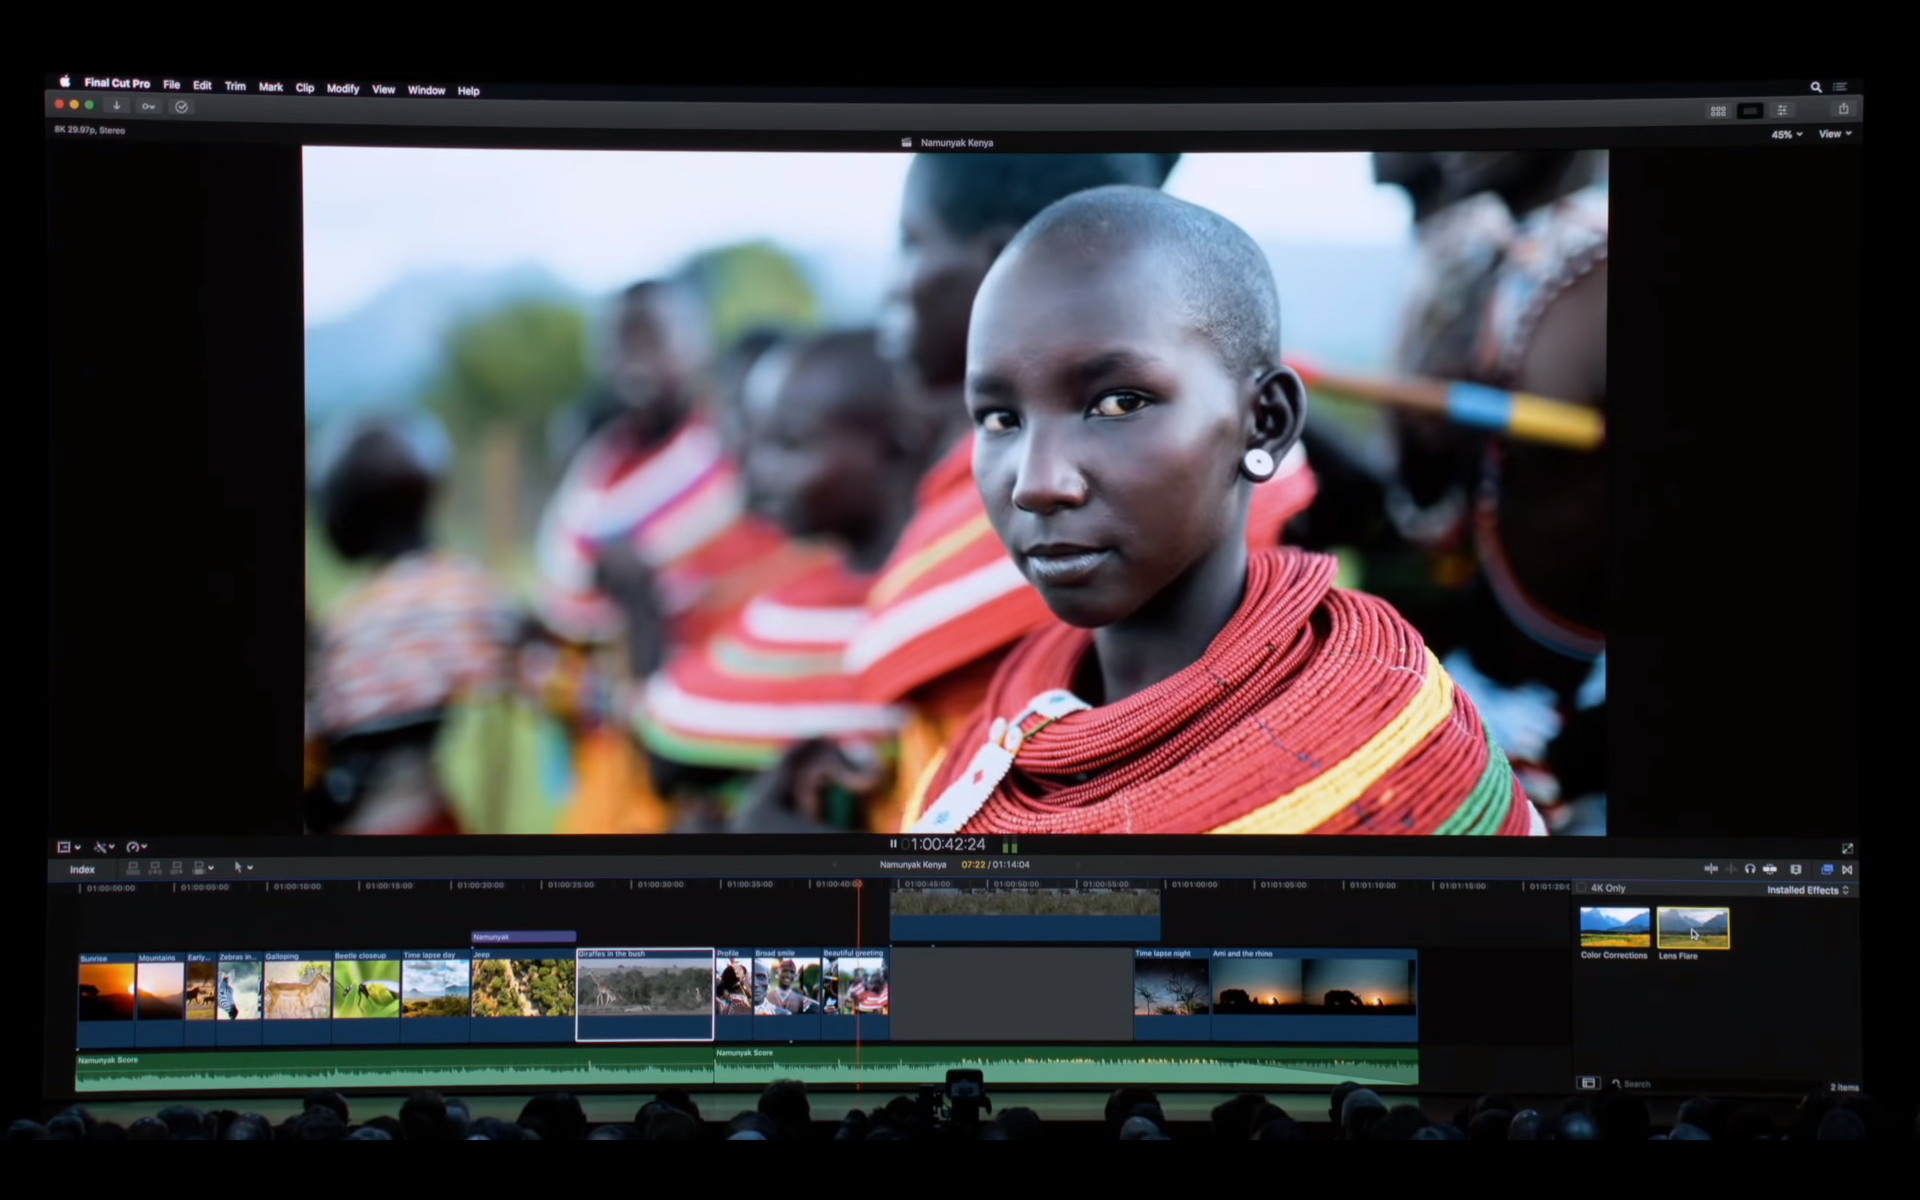 Where did the 8K ProRes RAW come from on Apple's WWDC? Some inconsistencies...